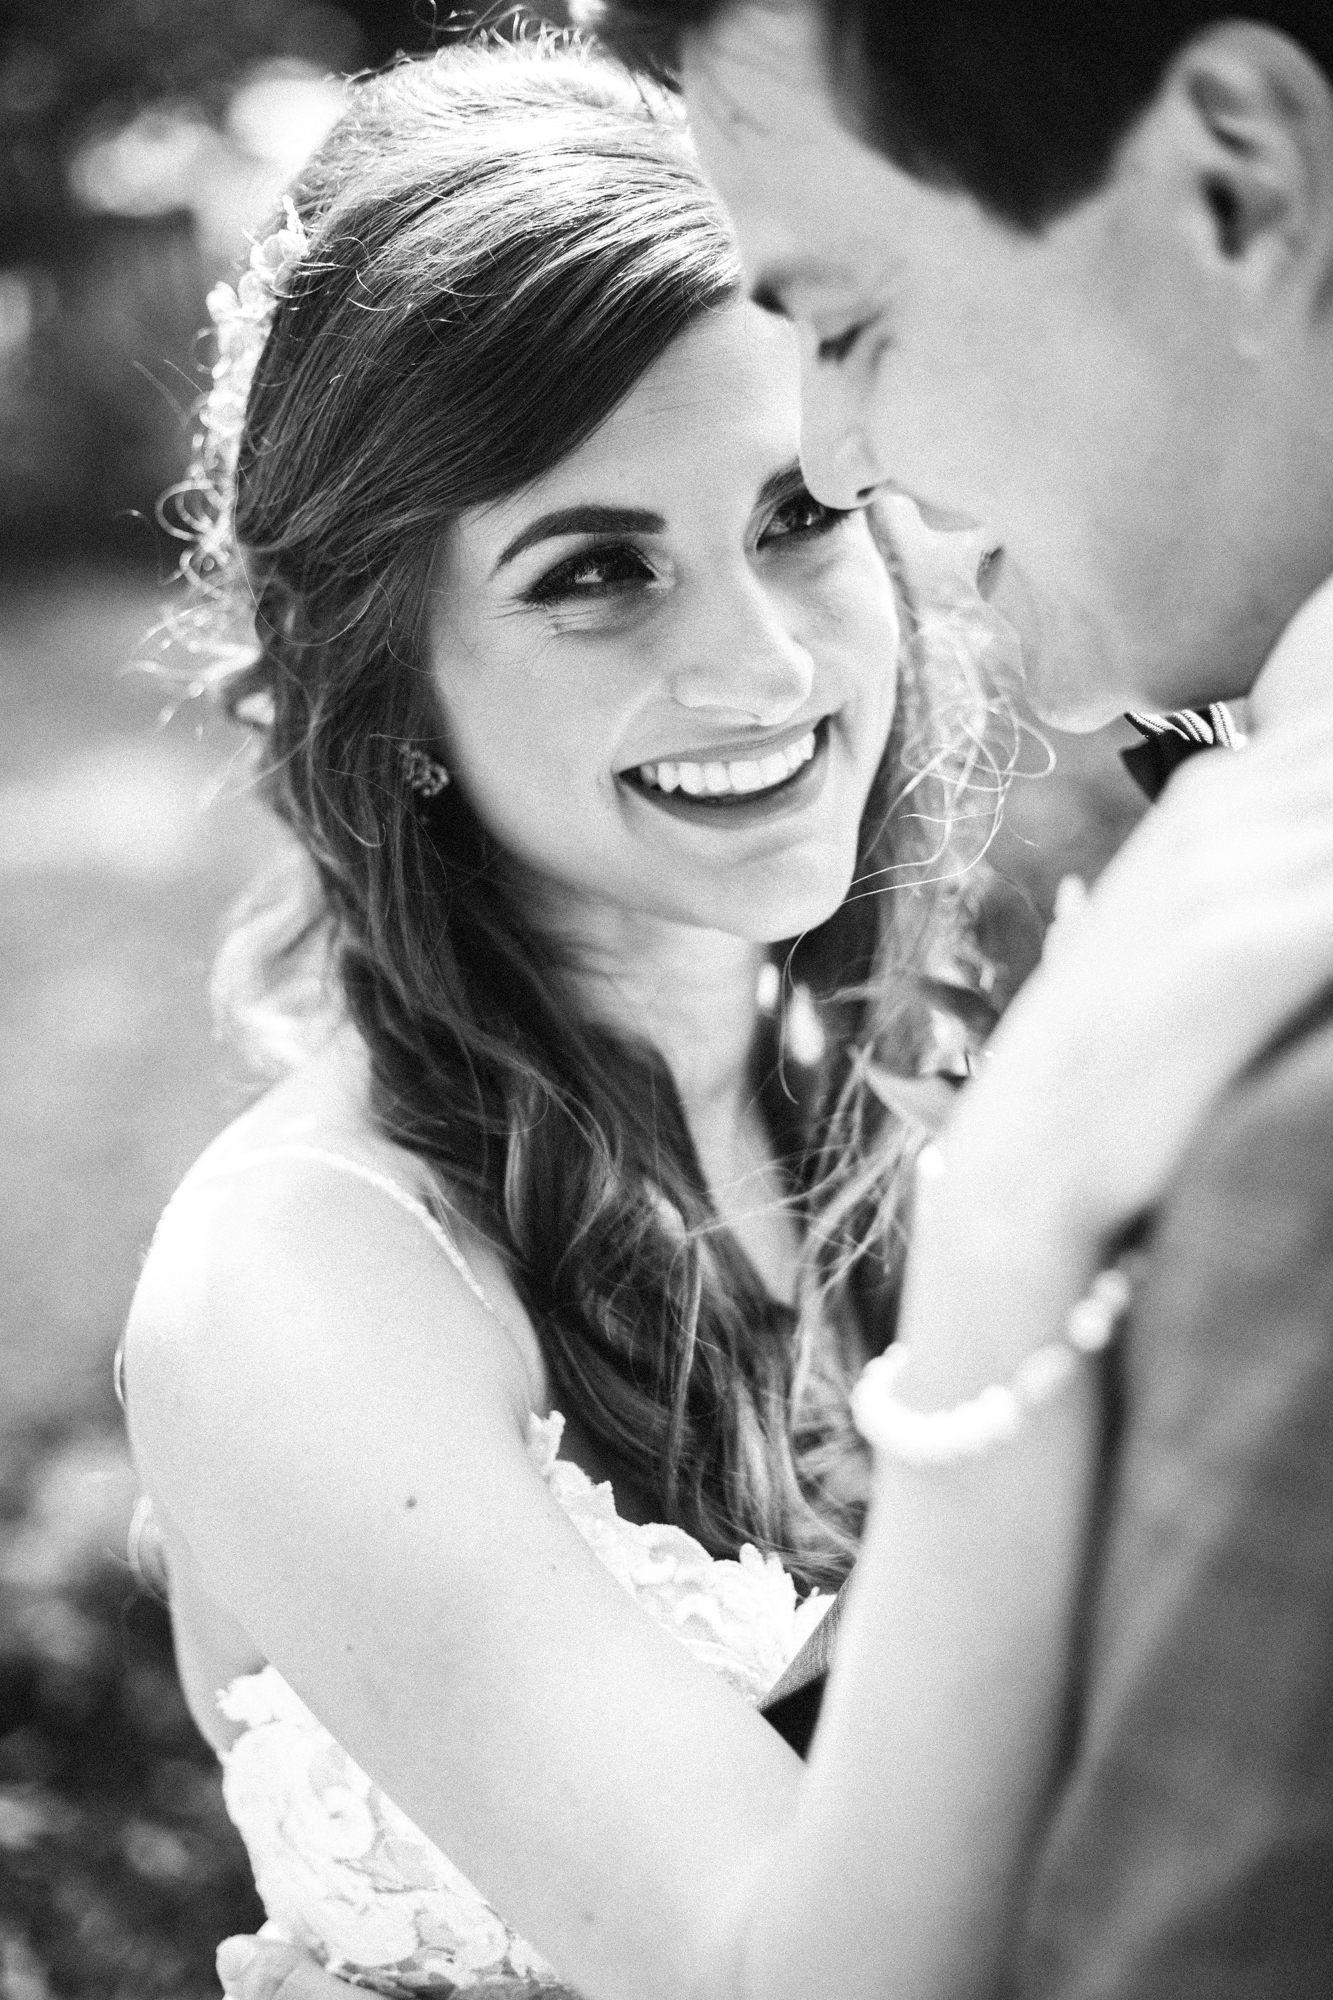 Gulfport_Wedding_Photographer-35.jpg